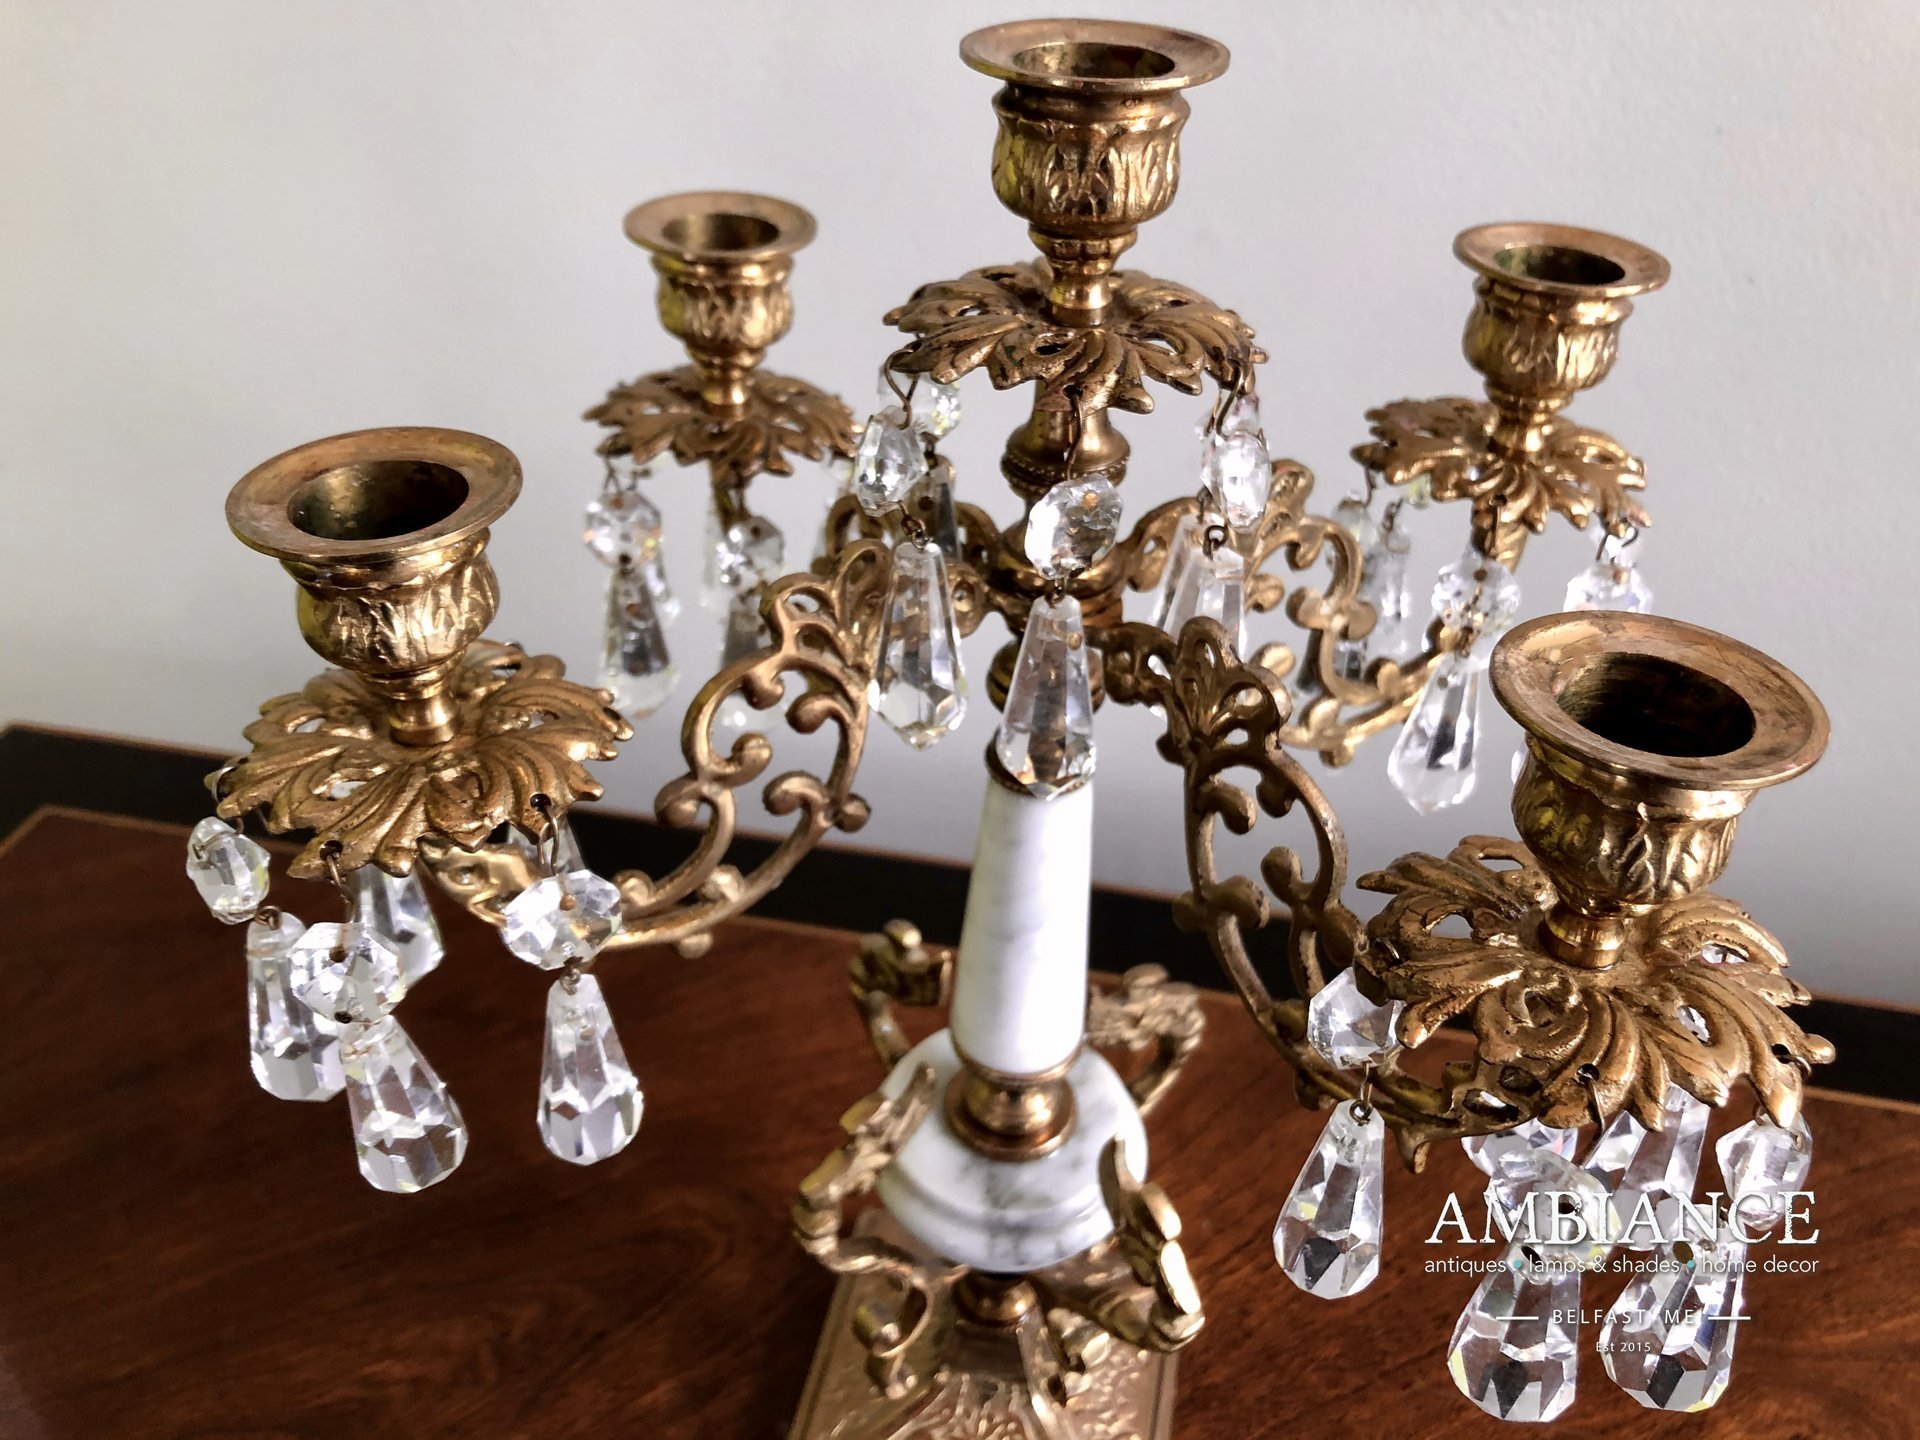 Candelabra in Bronze with Crystals and Marble at AMBIANCE (03)